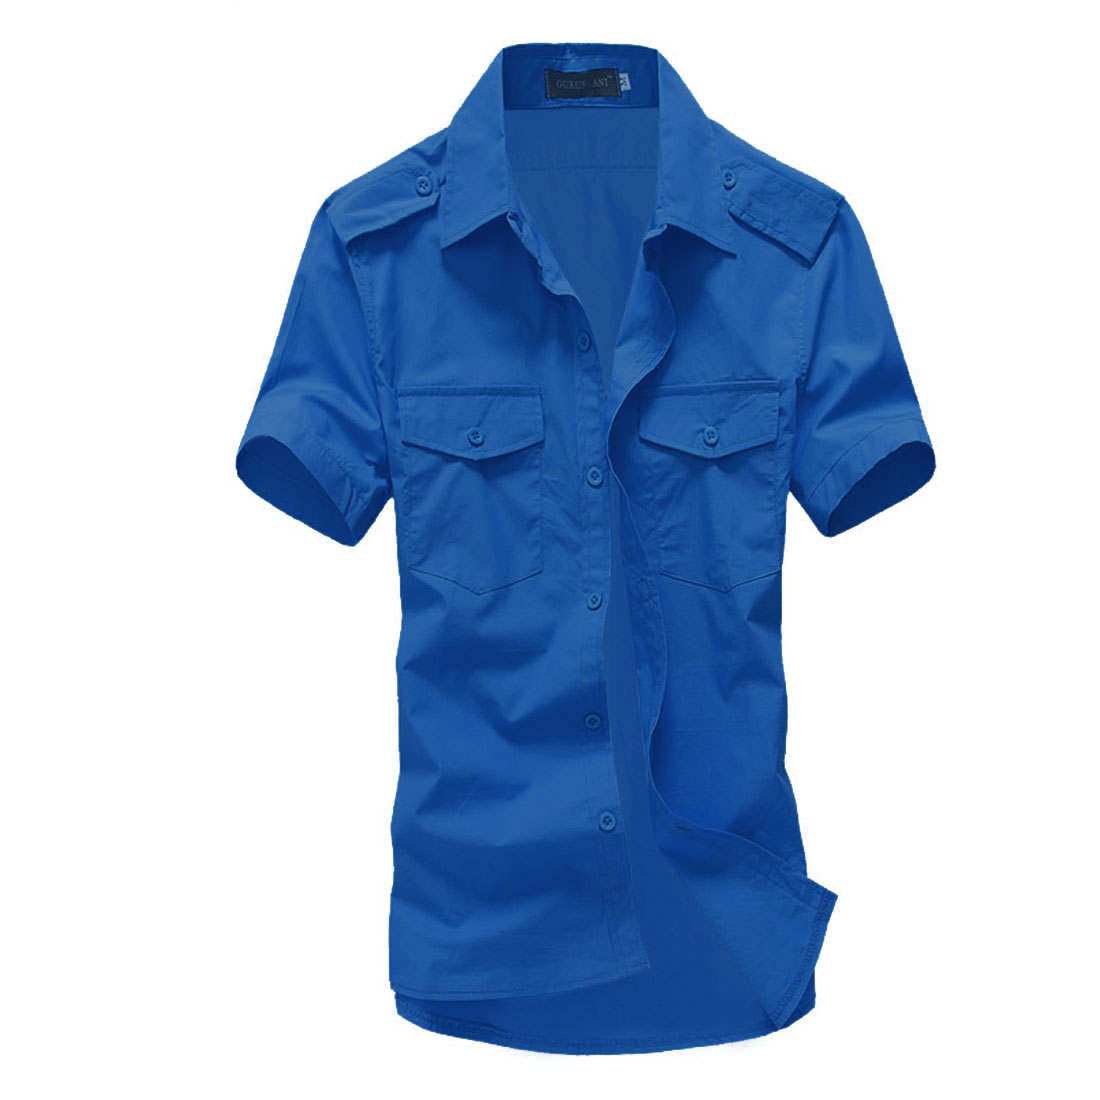 Man Buttoned Epaulettes Breast Pockets Stylish Shirt Royal Blue L